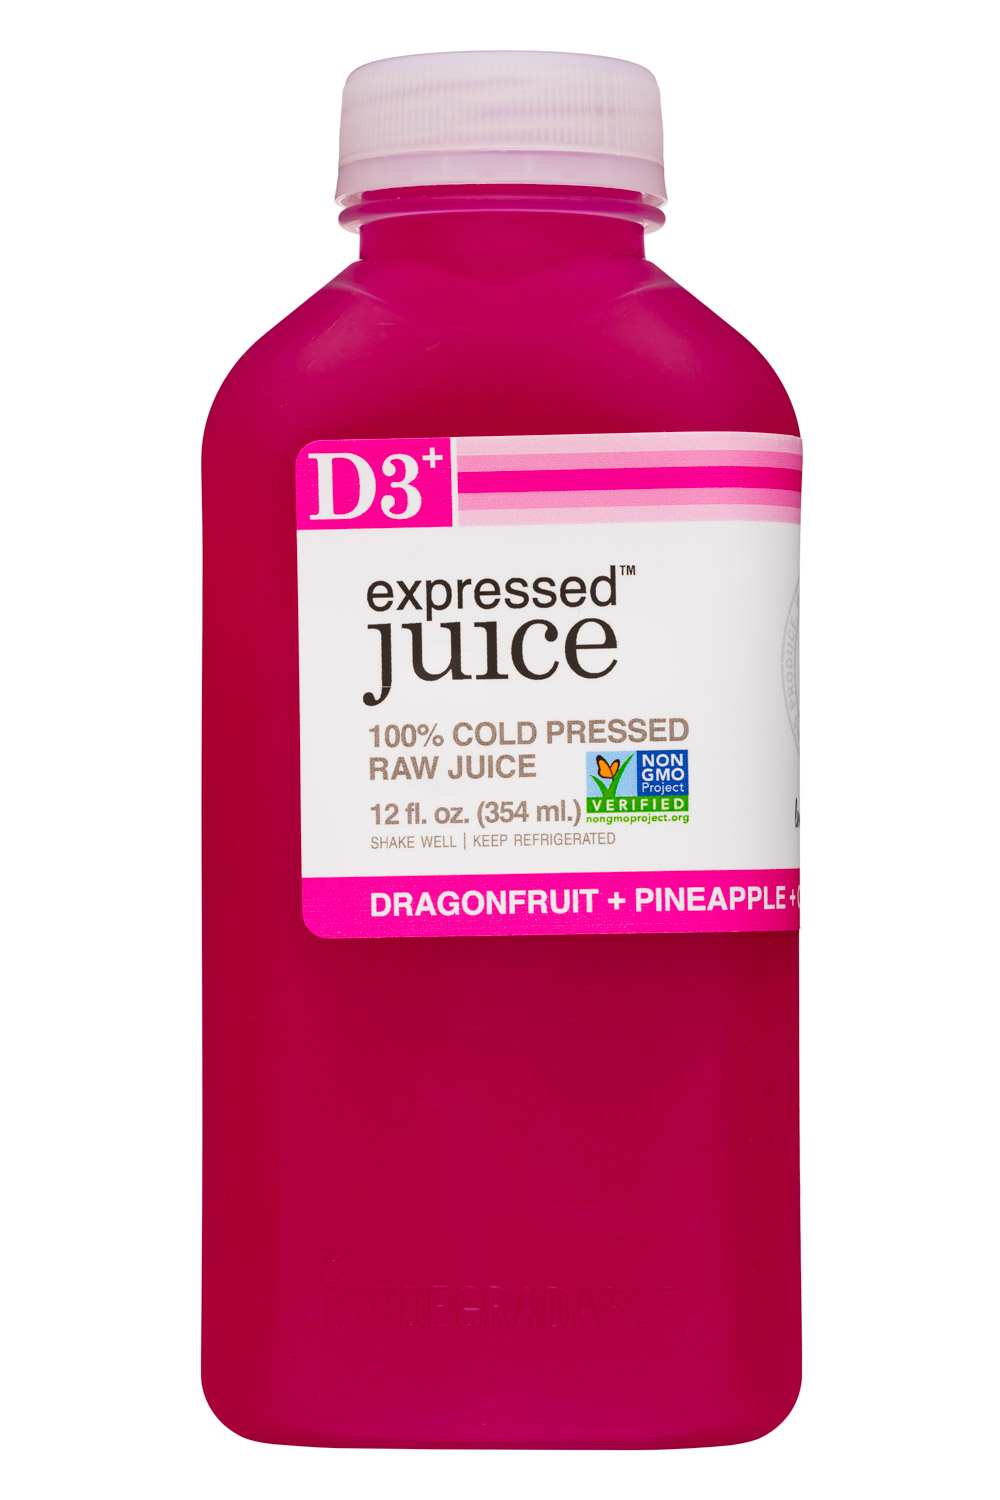 D3 - Dragonfruit + Pineapple + Coconut Water + Lime